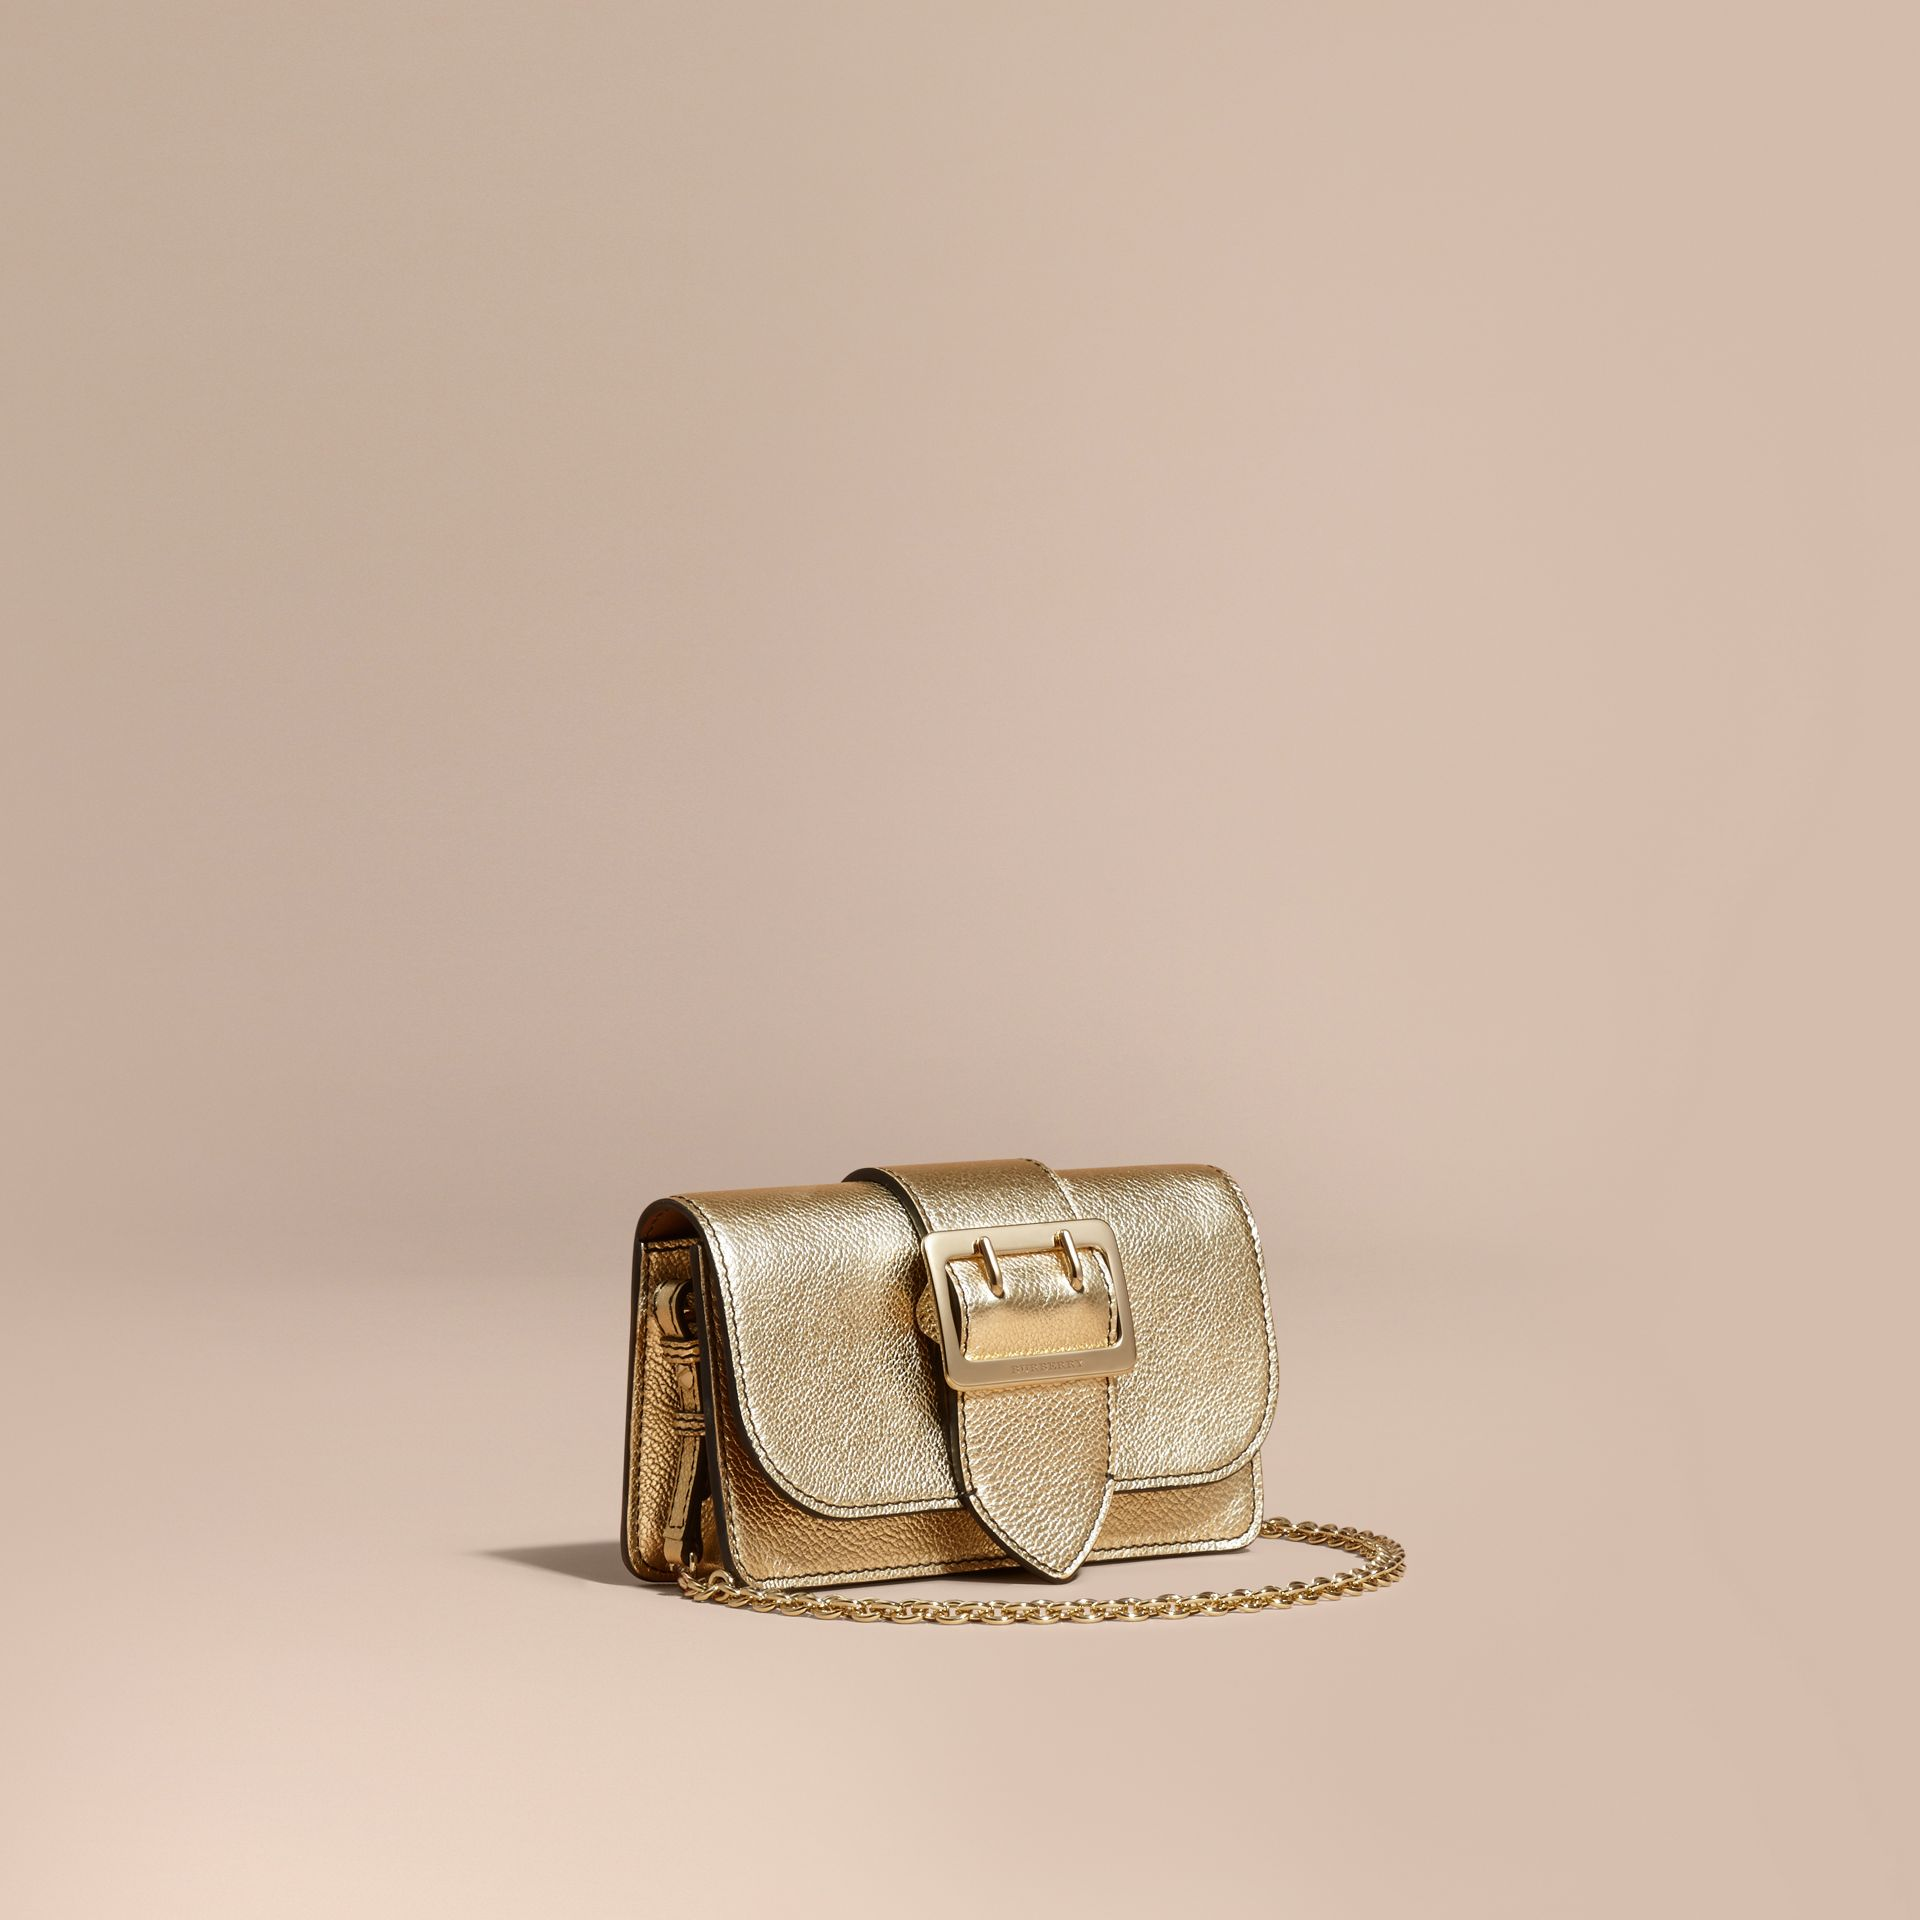 Gold The Mini Buckle Bag in Metallic Grainy Leather Gold - gallery image 1